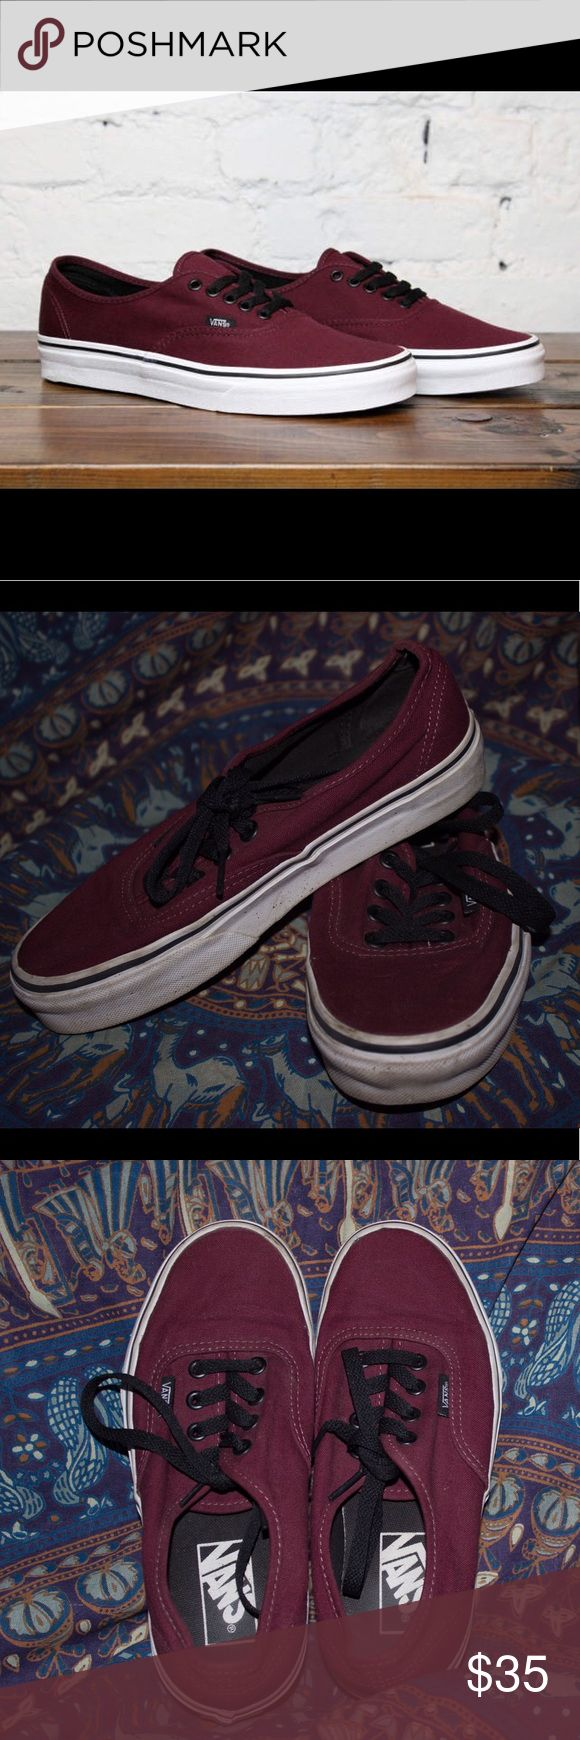 Classic Maroon Vans *PRICE DECREASE* Gently used maroon vans! The sides are kind of dirty but nothing a quick cleaning can't fix! Vans Shoes Sneakers